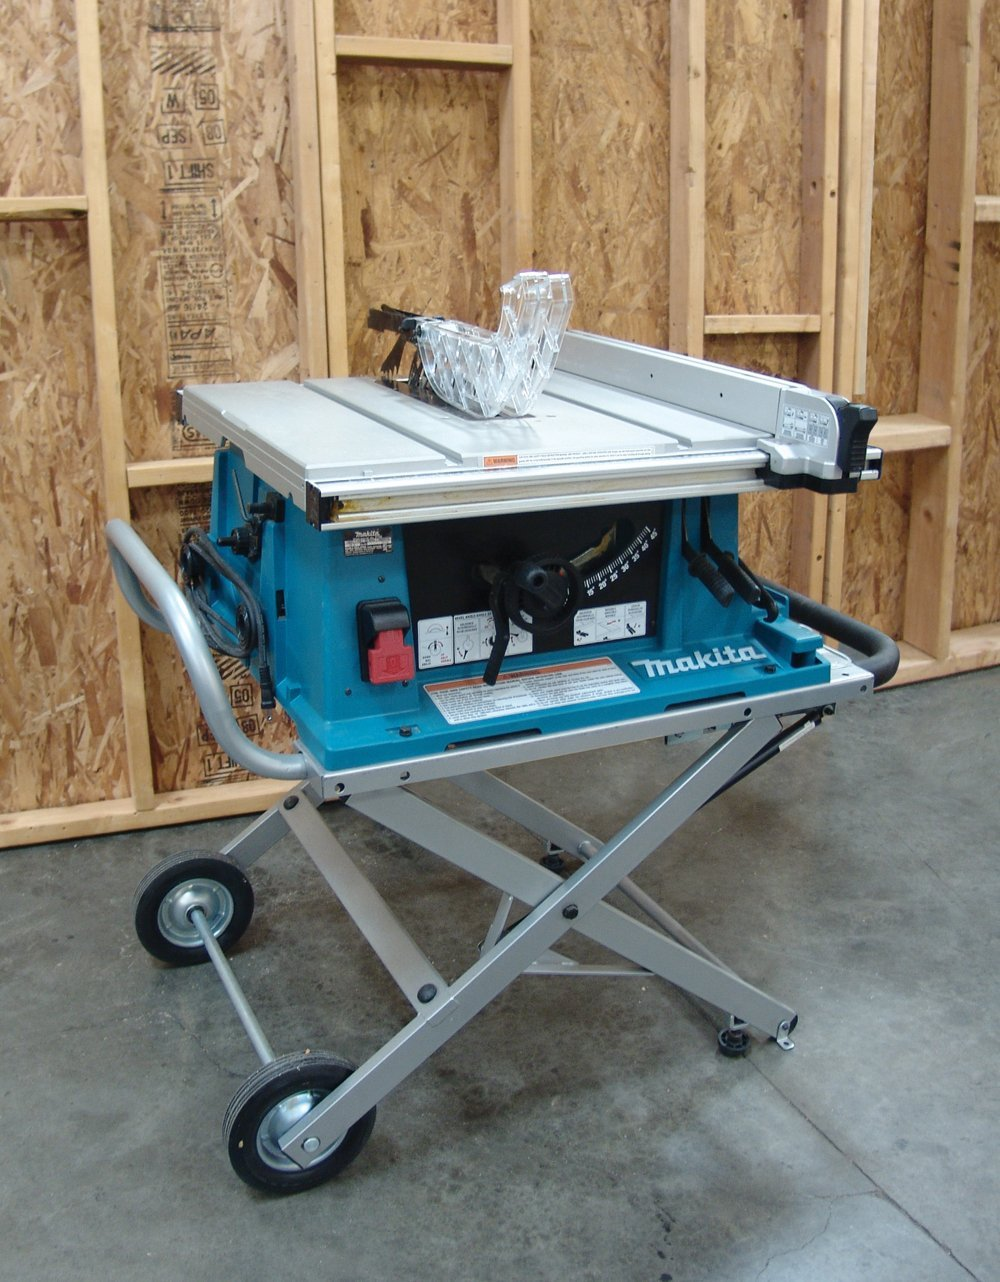 saws benchtop table wheels options best the portable saw one of stands a brains review benefits